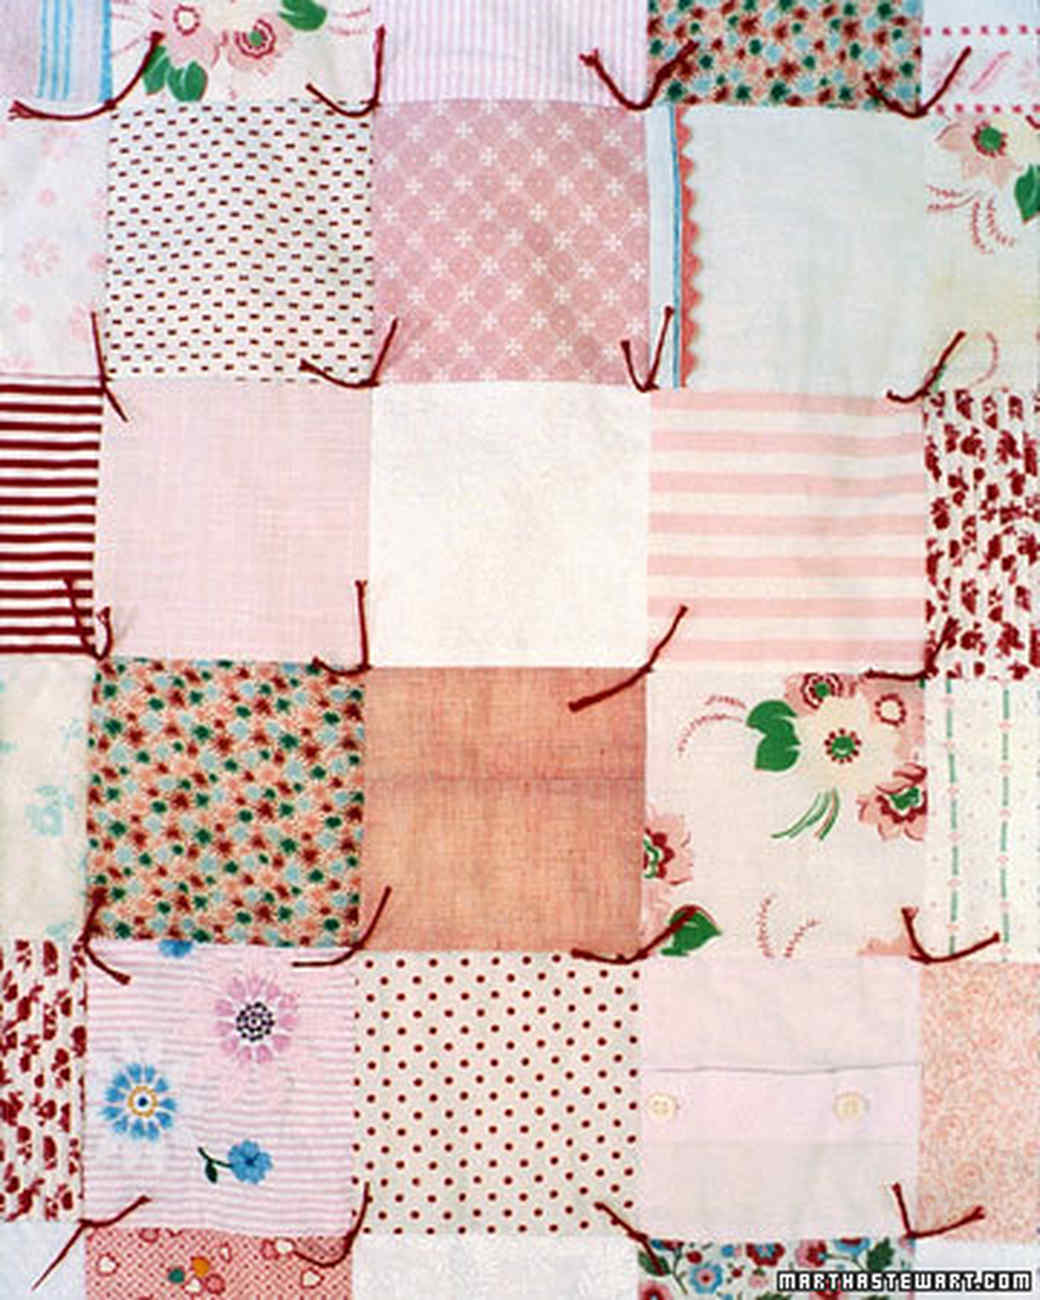 The Best Way to Make a Quilt - wikiHow]